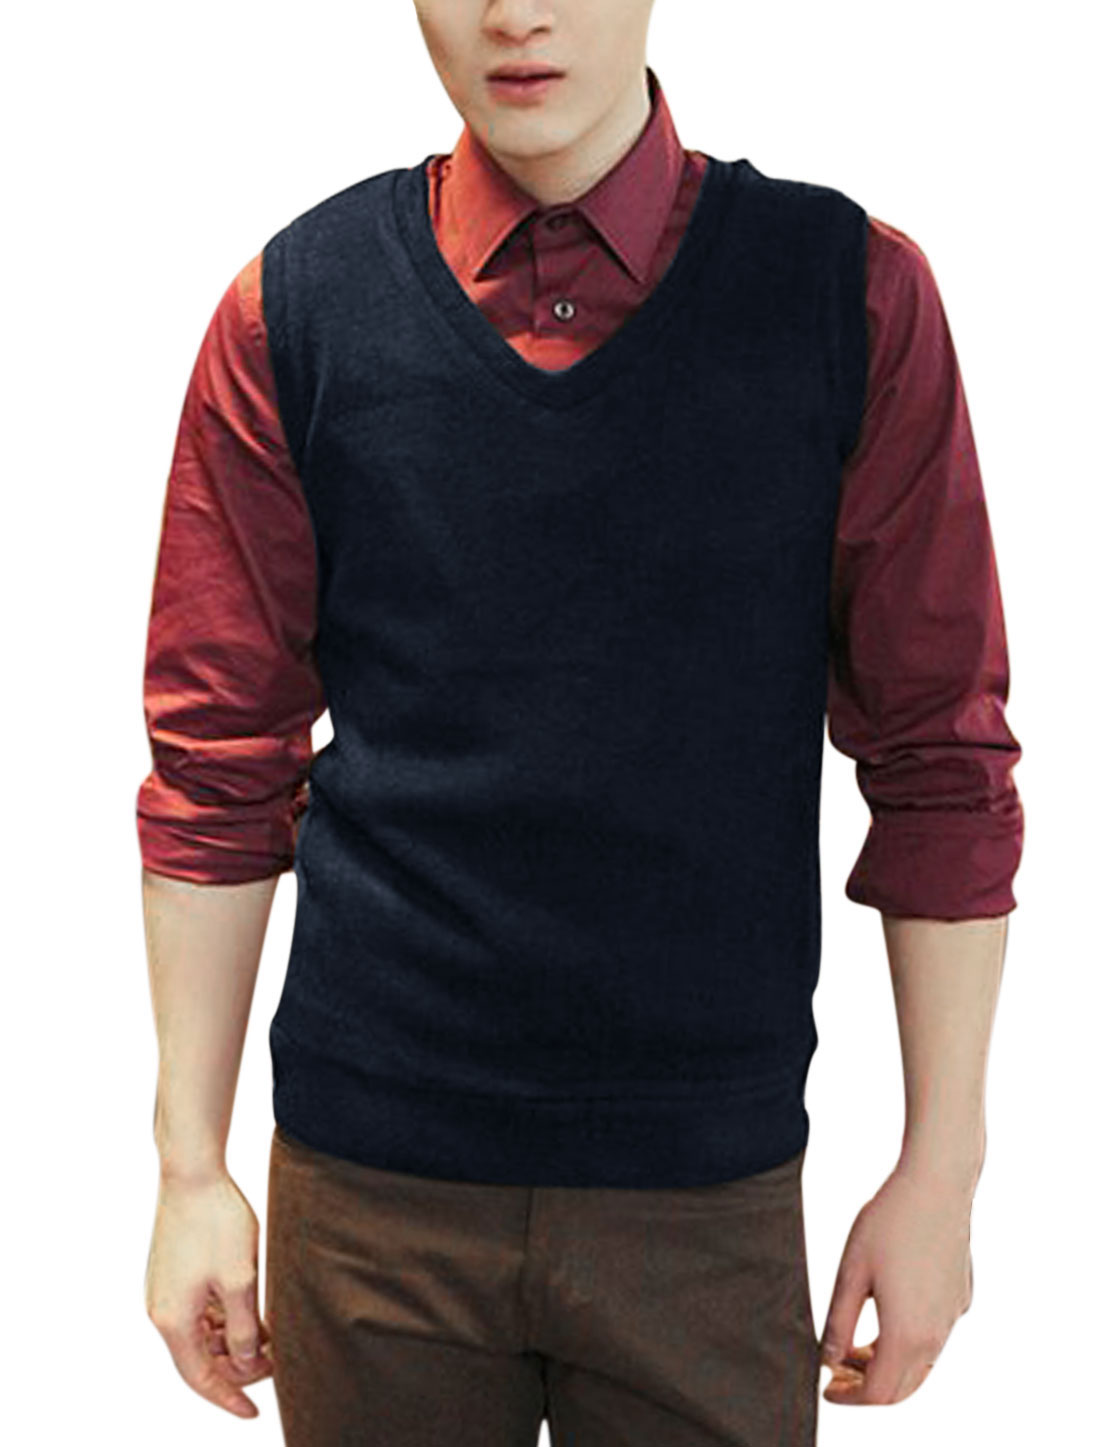 Men V Neck Stretchy Casual Knit Vests Navy Blue M